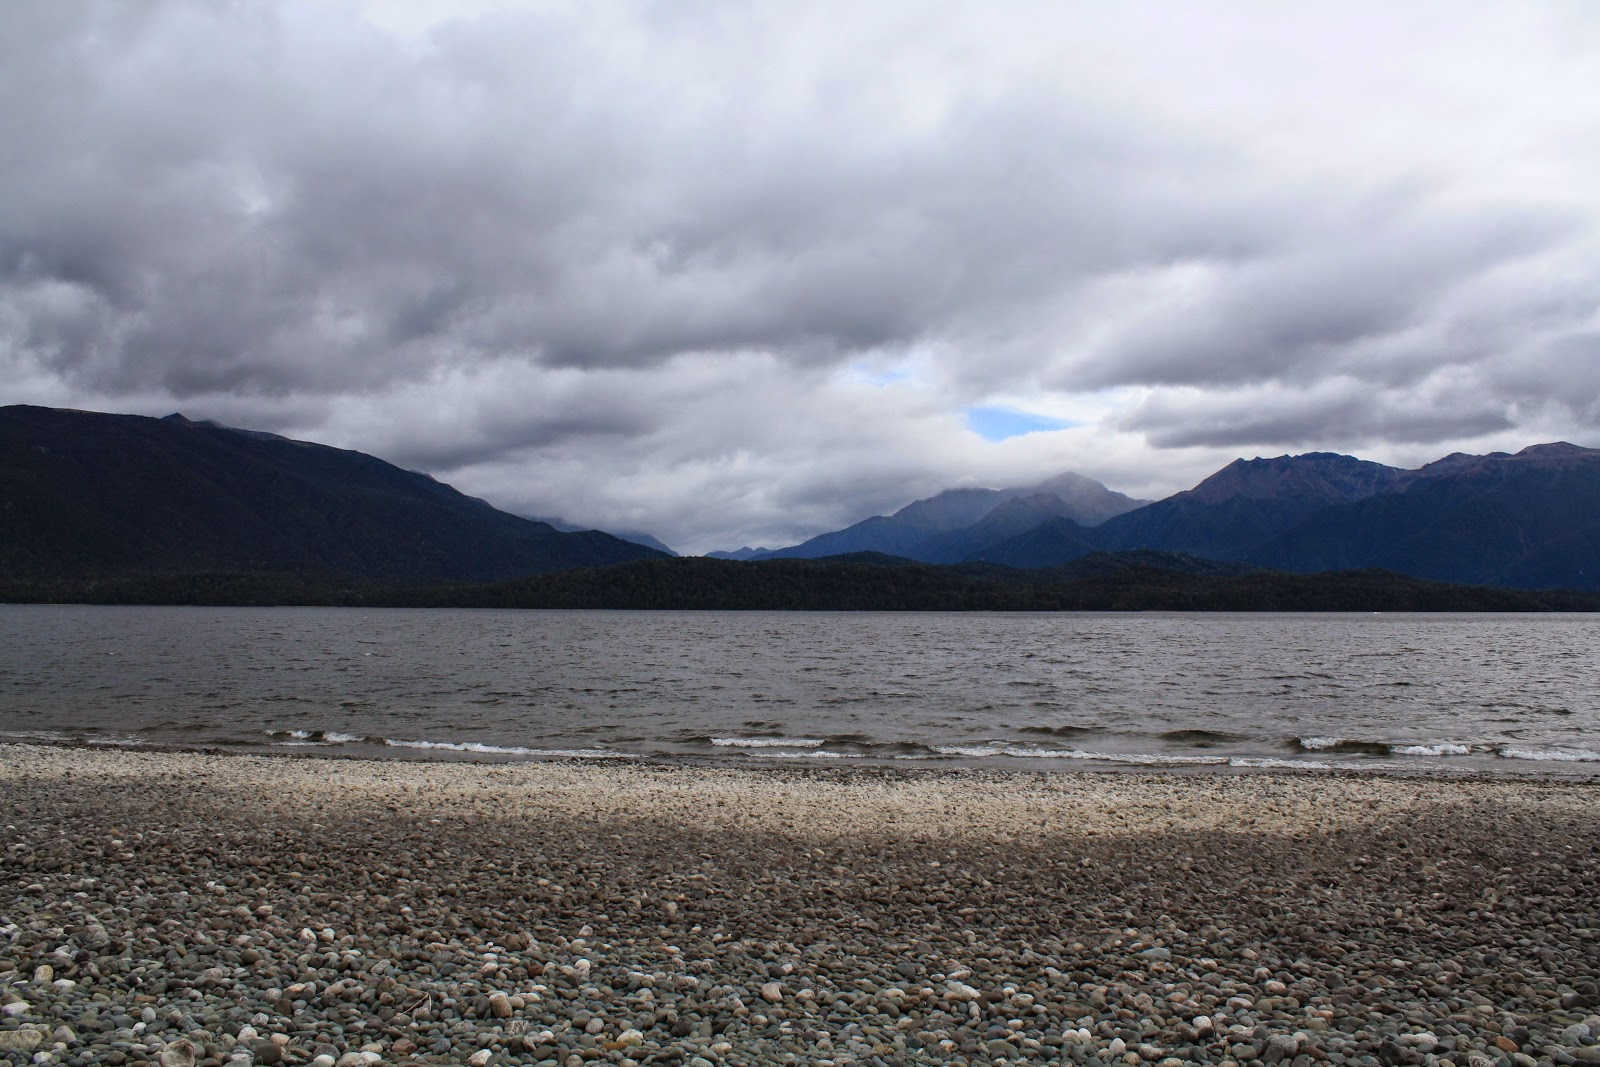 Looking over Lake Te Anau.